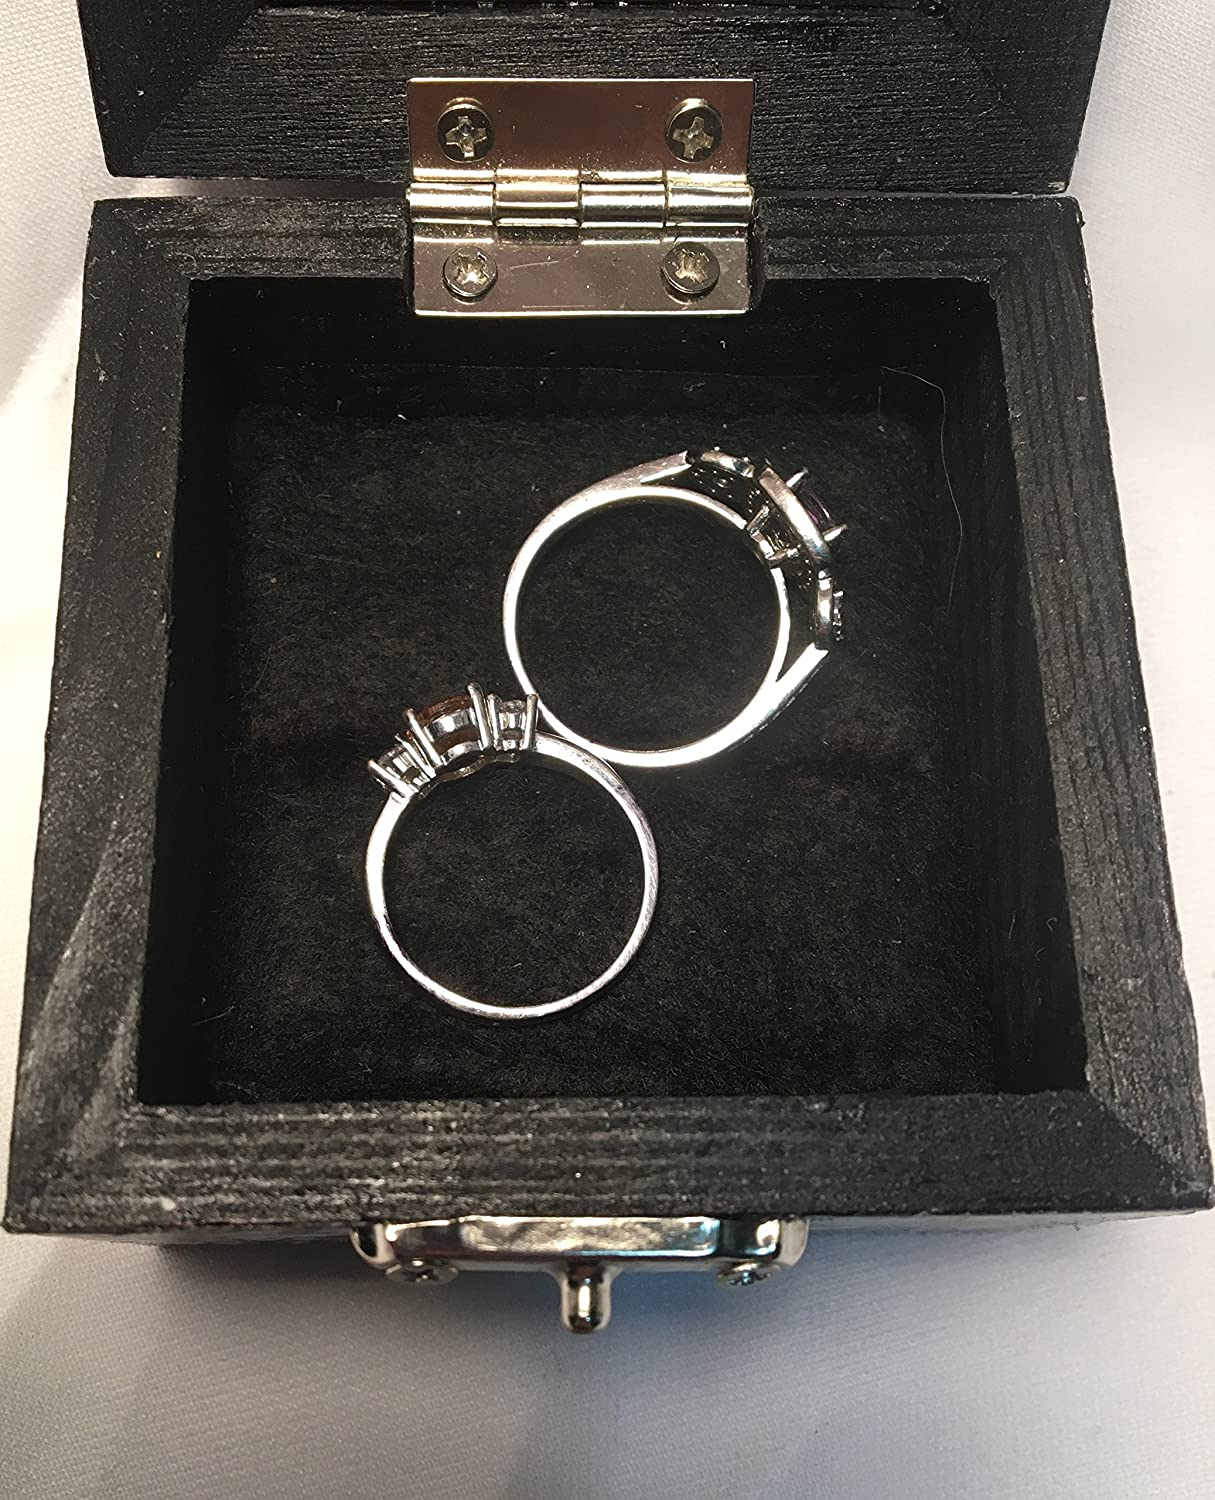 Harry Potter Marauders Map Inspired Proposal Engagement Ring Box